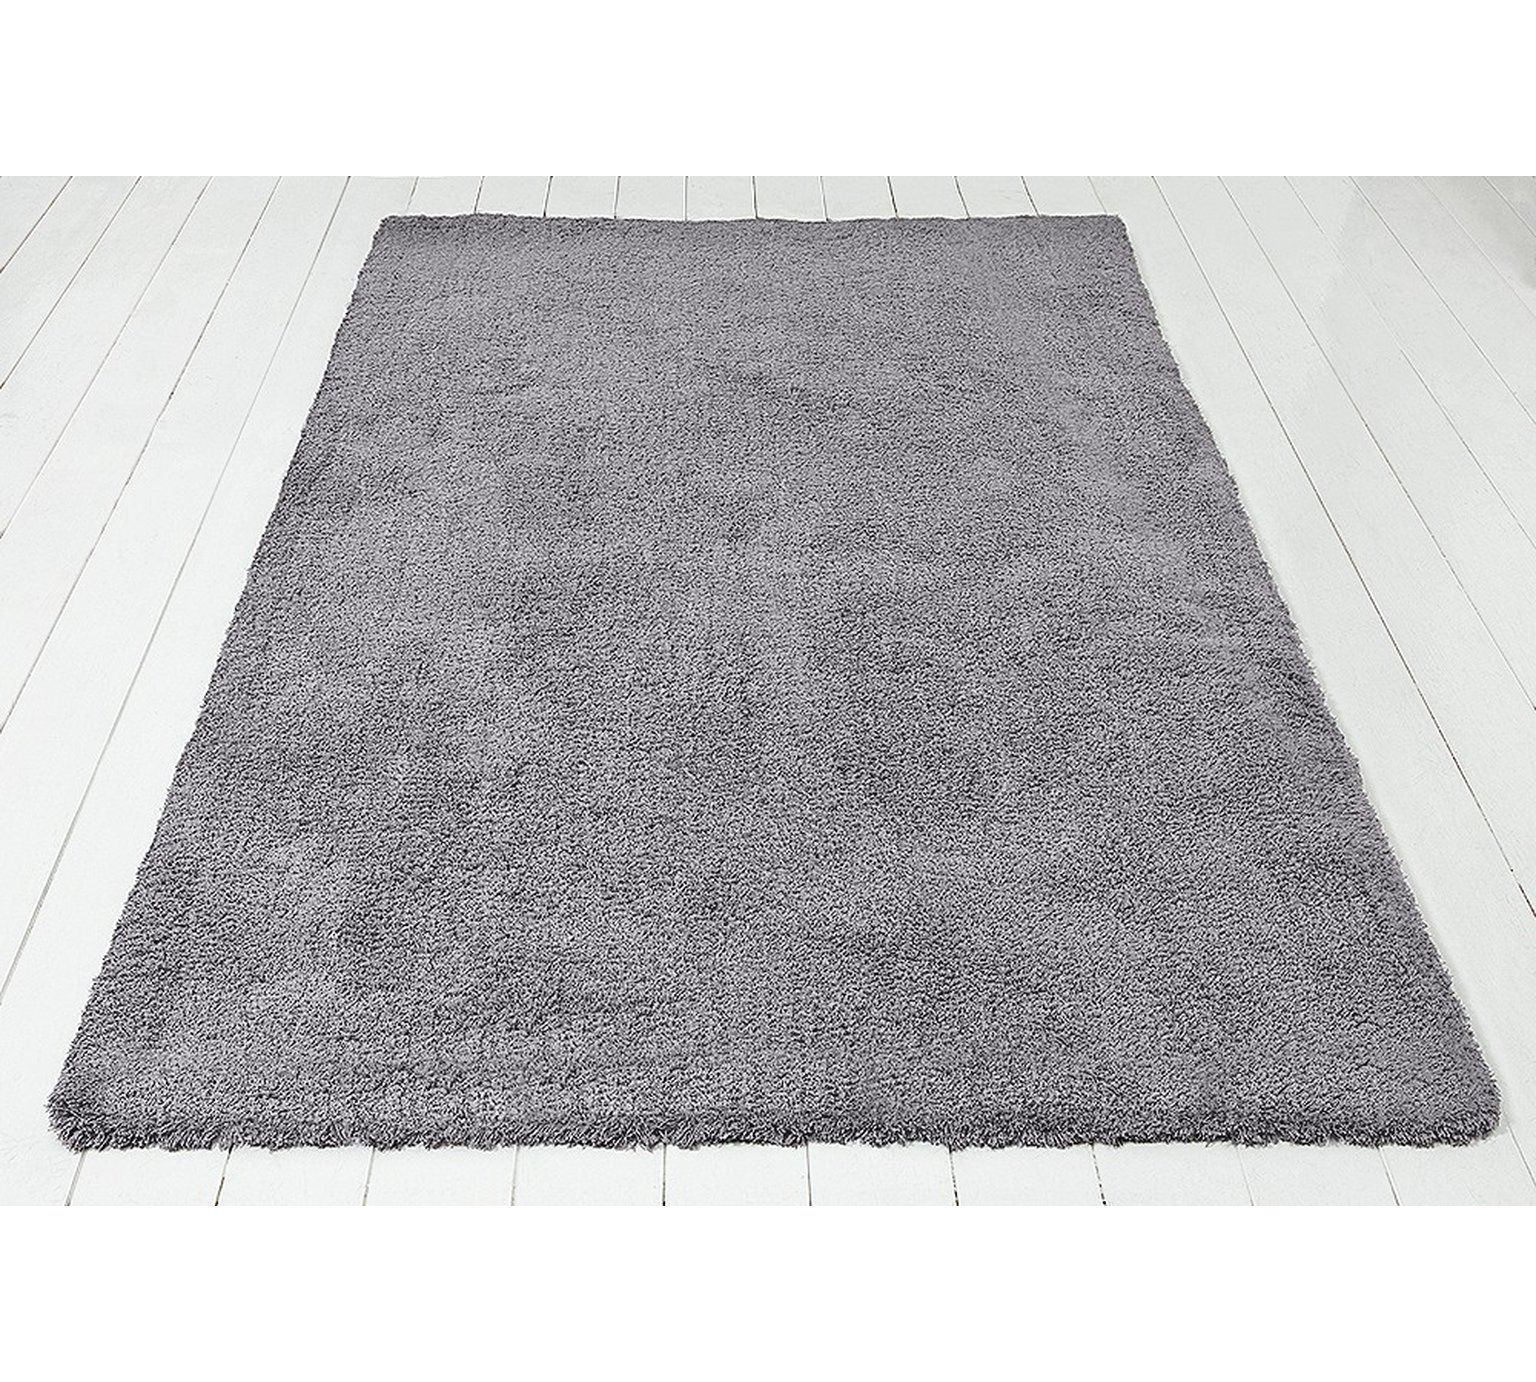 Buy Colourmatch Snuggle Shaggy Rug 110x170cm Flint Grey At Argos Co Uk Visit Argos Co Uk To Shop Online For Rugs And Ma Rugs And Mats Shaggy Rug Grey Rugs